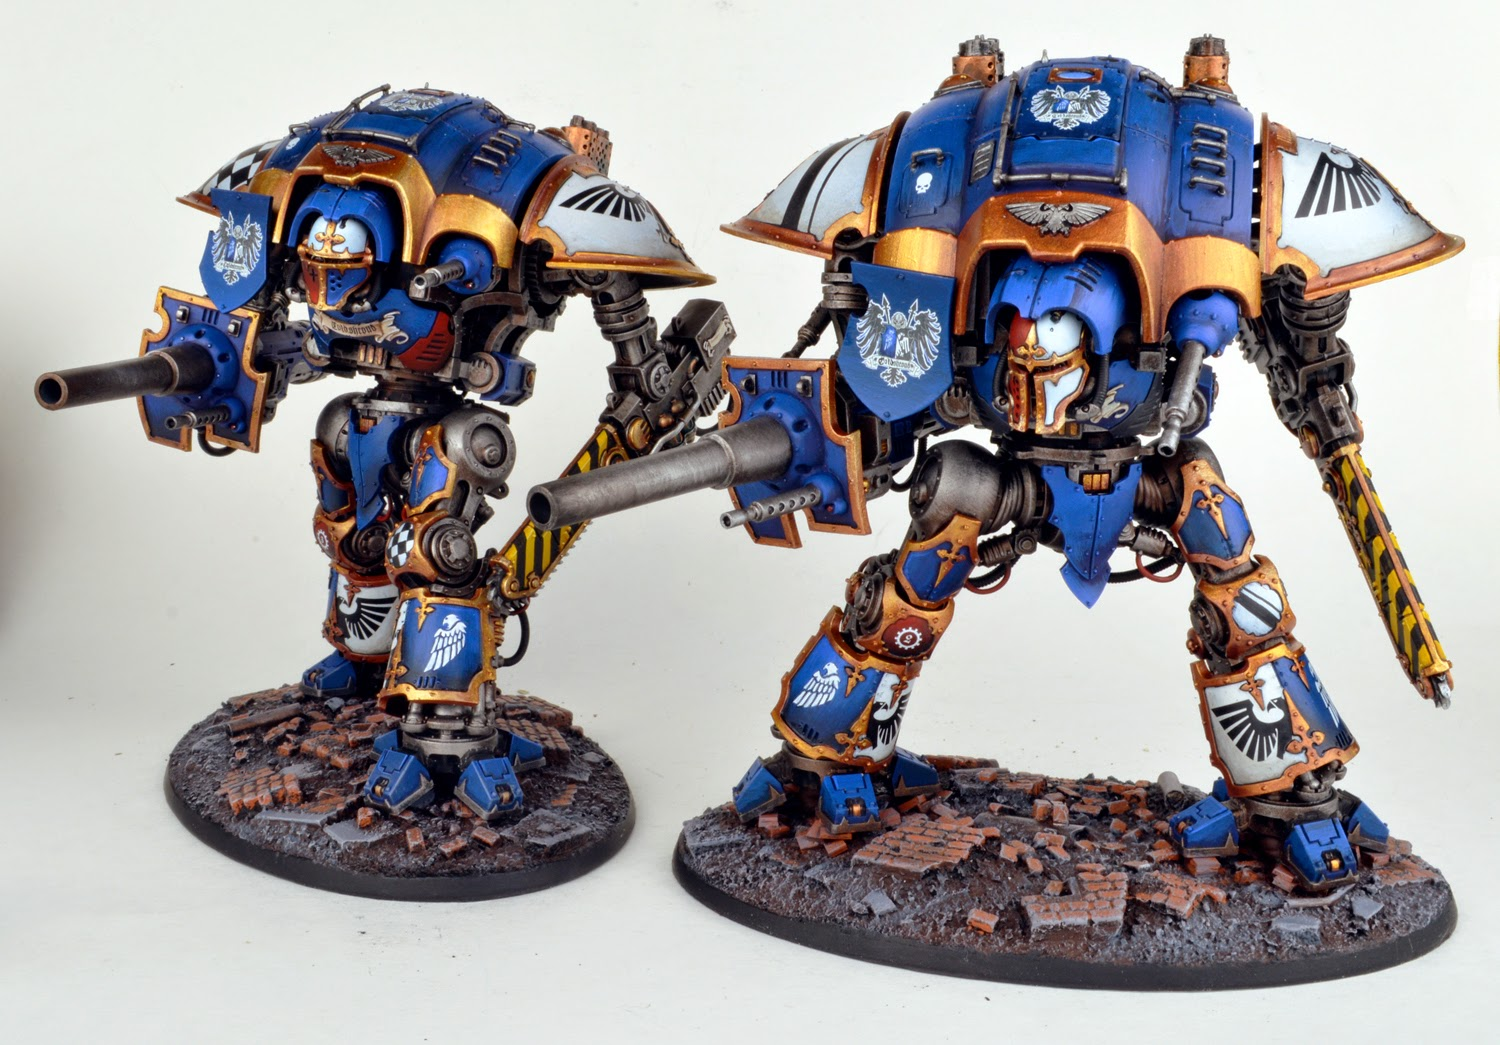 The Knights of House Coldshroud stand ready.